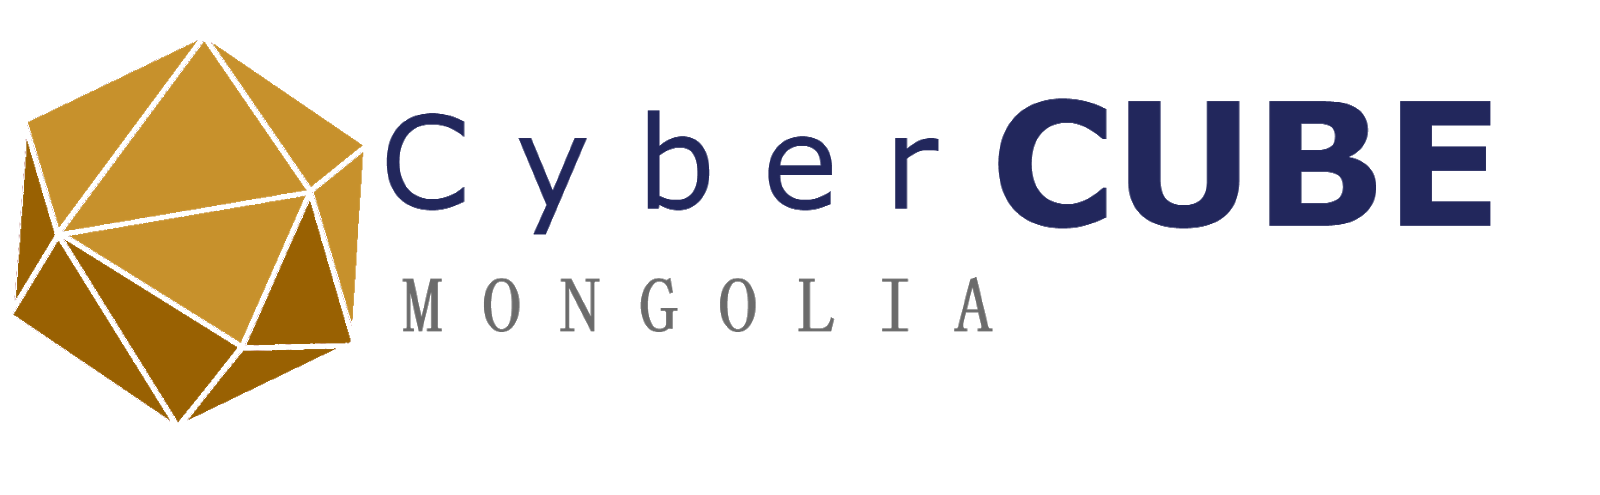 Cyber Security Consulting Mongolia | CyberCUBE | SOC, Cubit